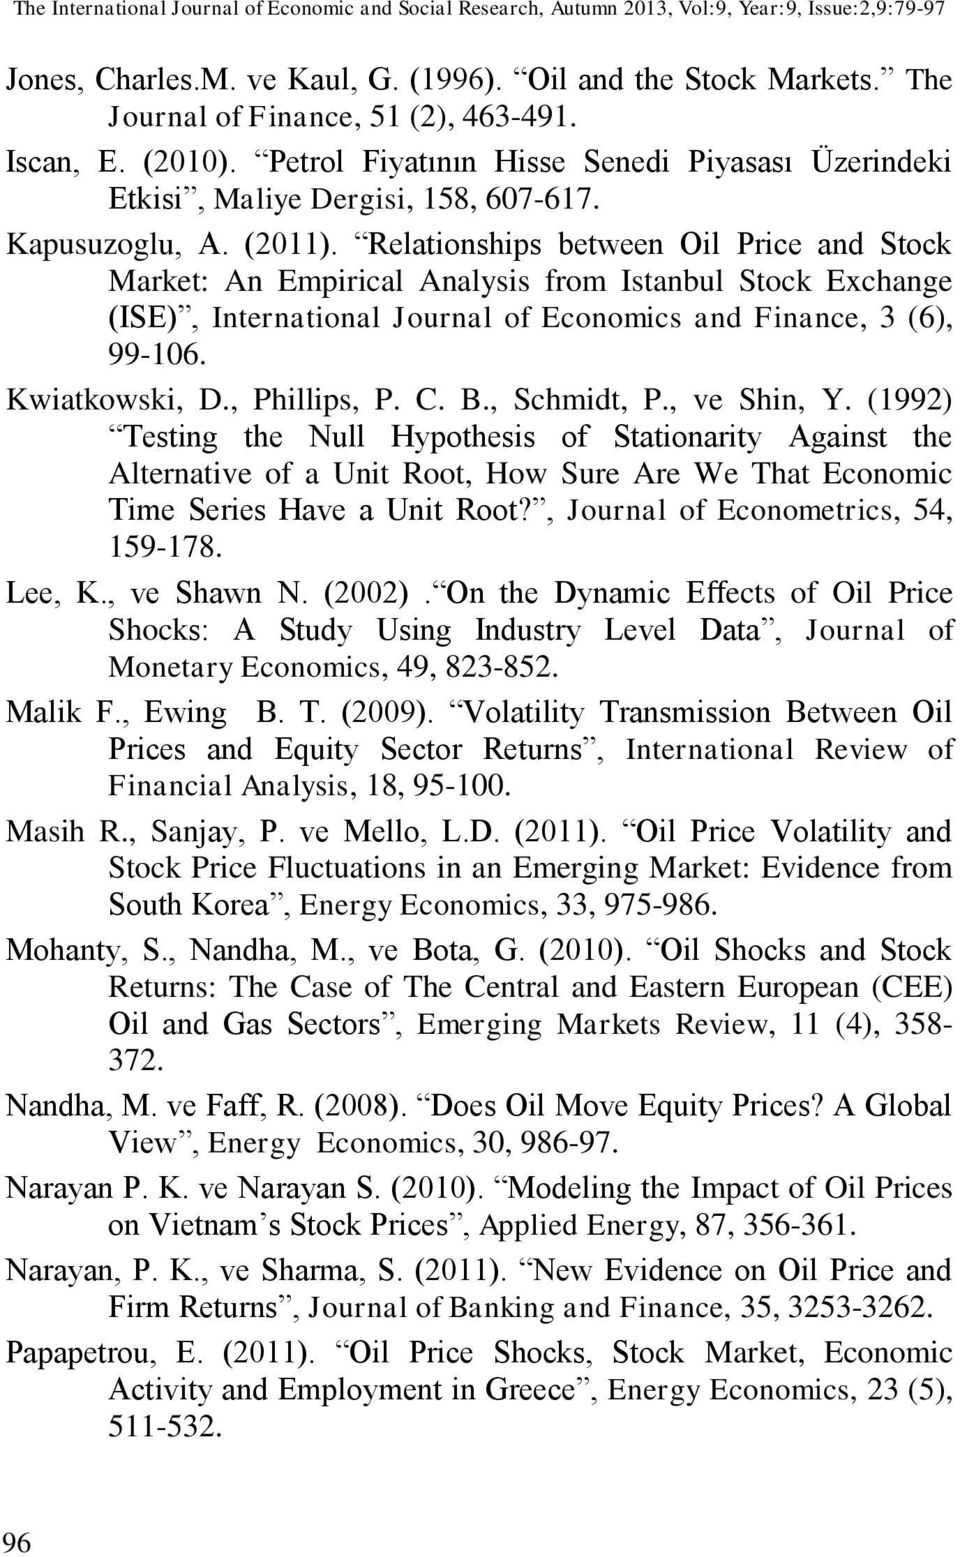 Relaionships beween Oil Price and Sock Marke: An Empirical Analysis from Isanbul Sock Exchange (ISE), Inernaional Journal of Economics and Finance, 3 (6), 99106. Kwiakowski, D., Phillips, P. C. B.